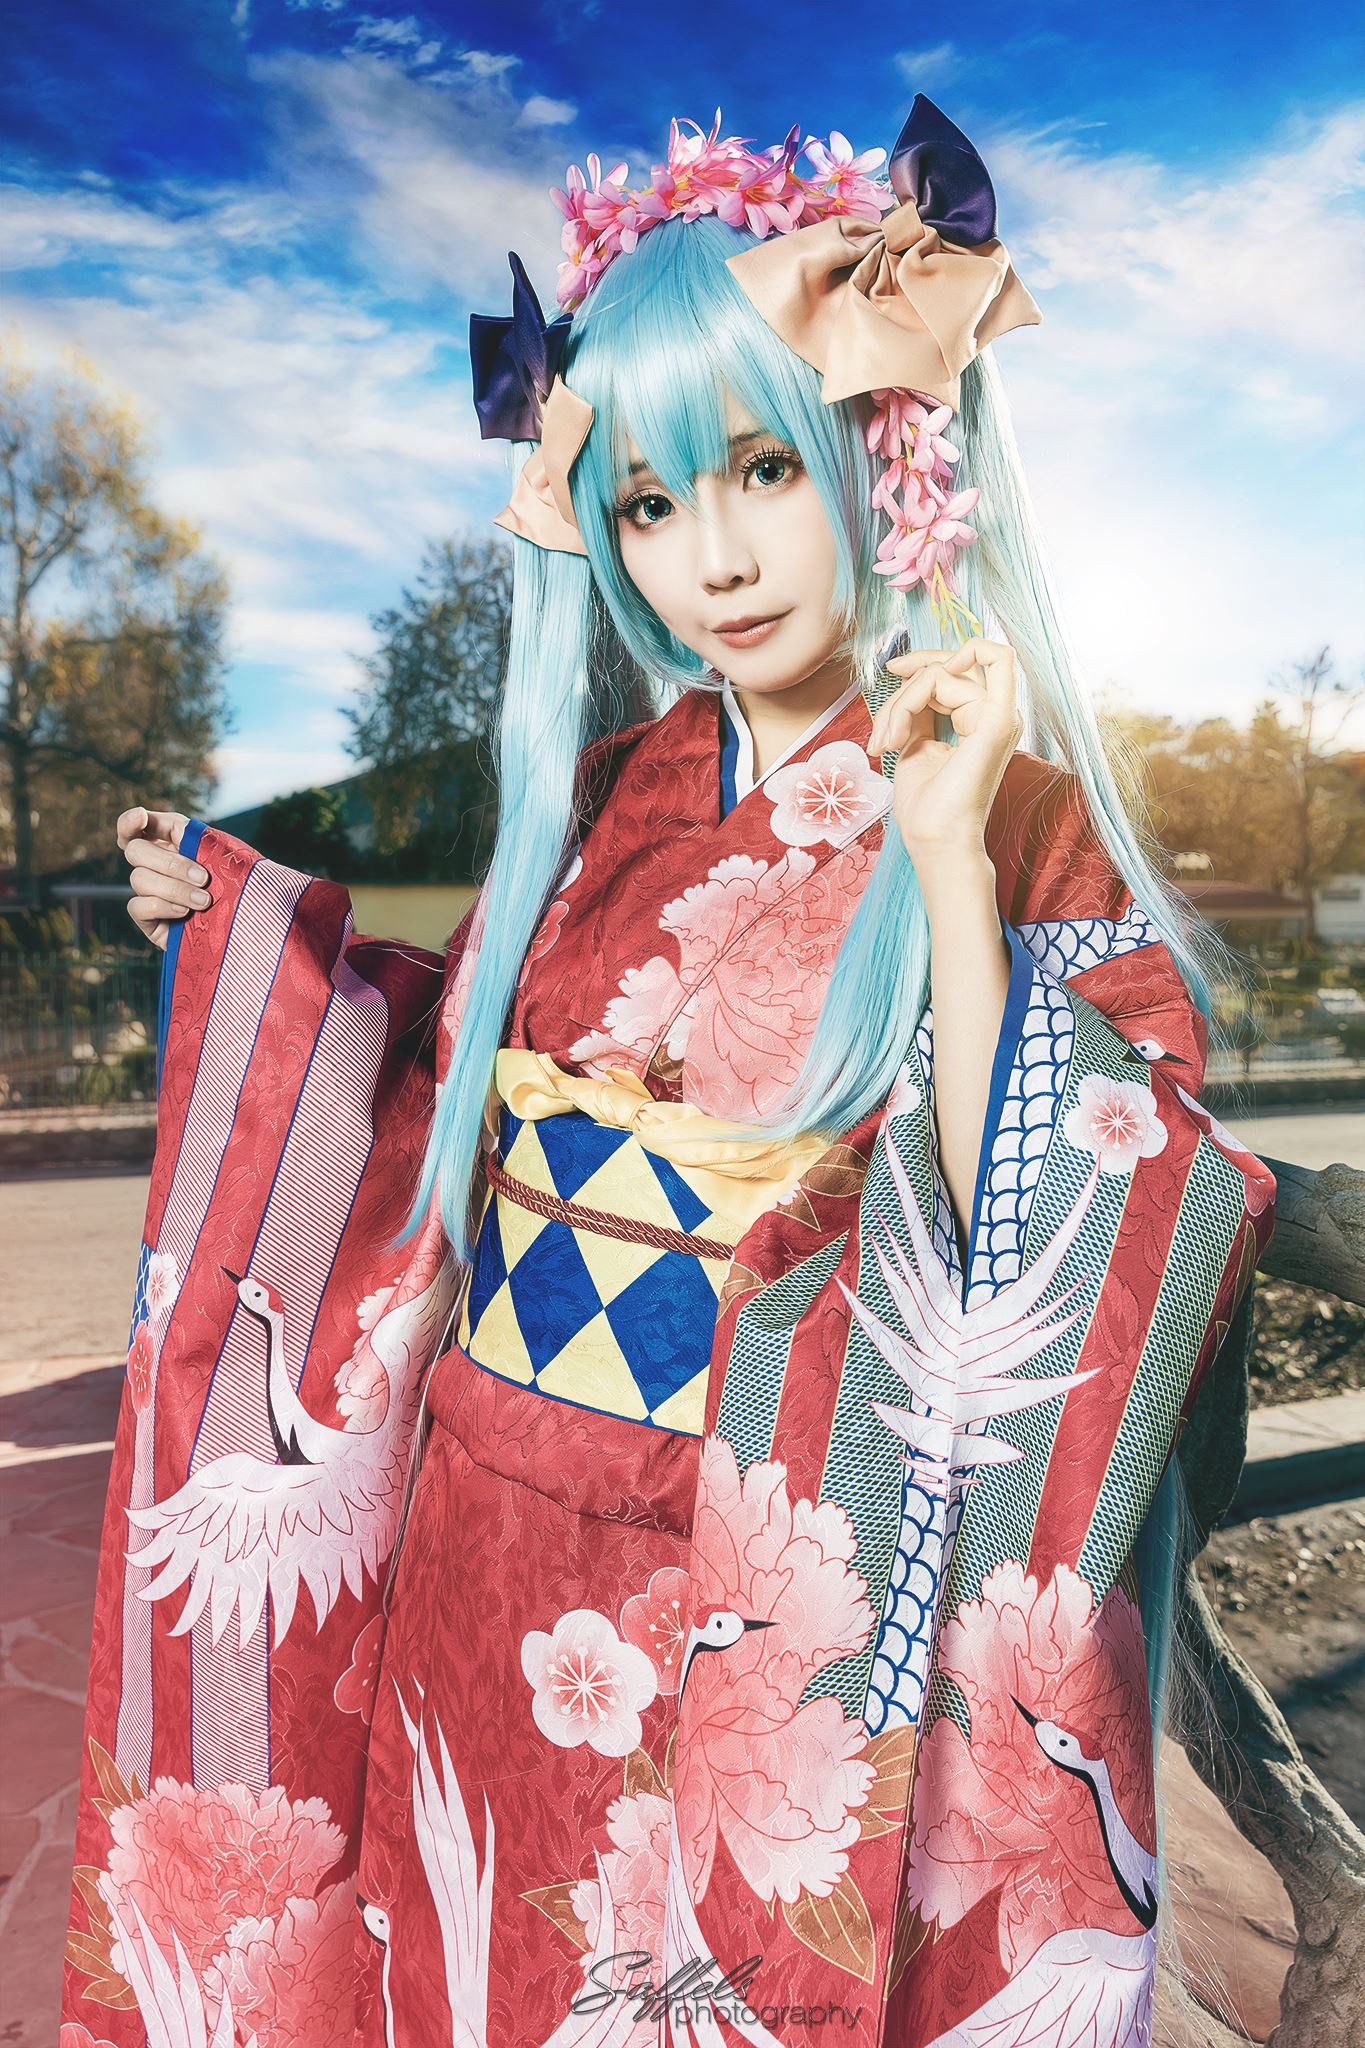 My first shot of Ely Cosplay as Hatsune Miku